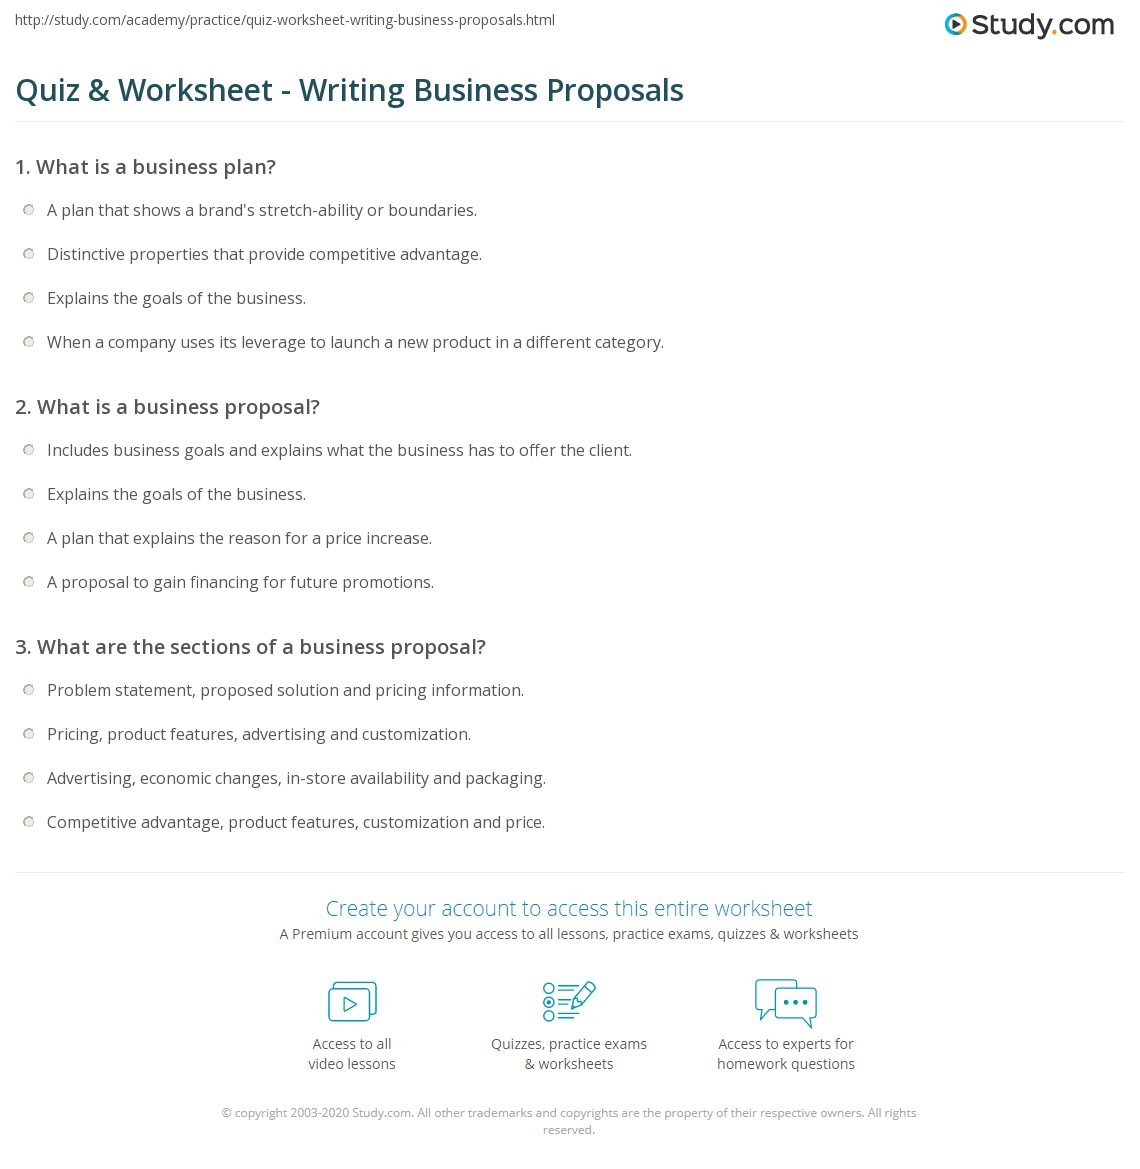 Quiz Worksheet Writing Business Proposals Study Com